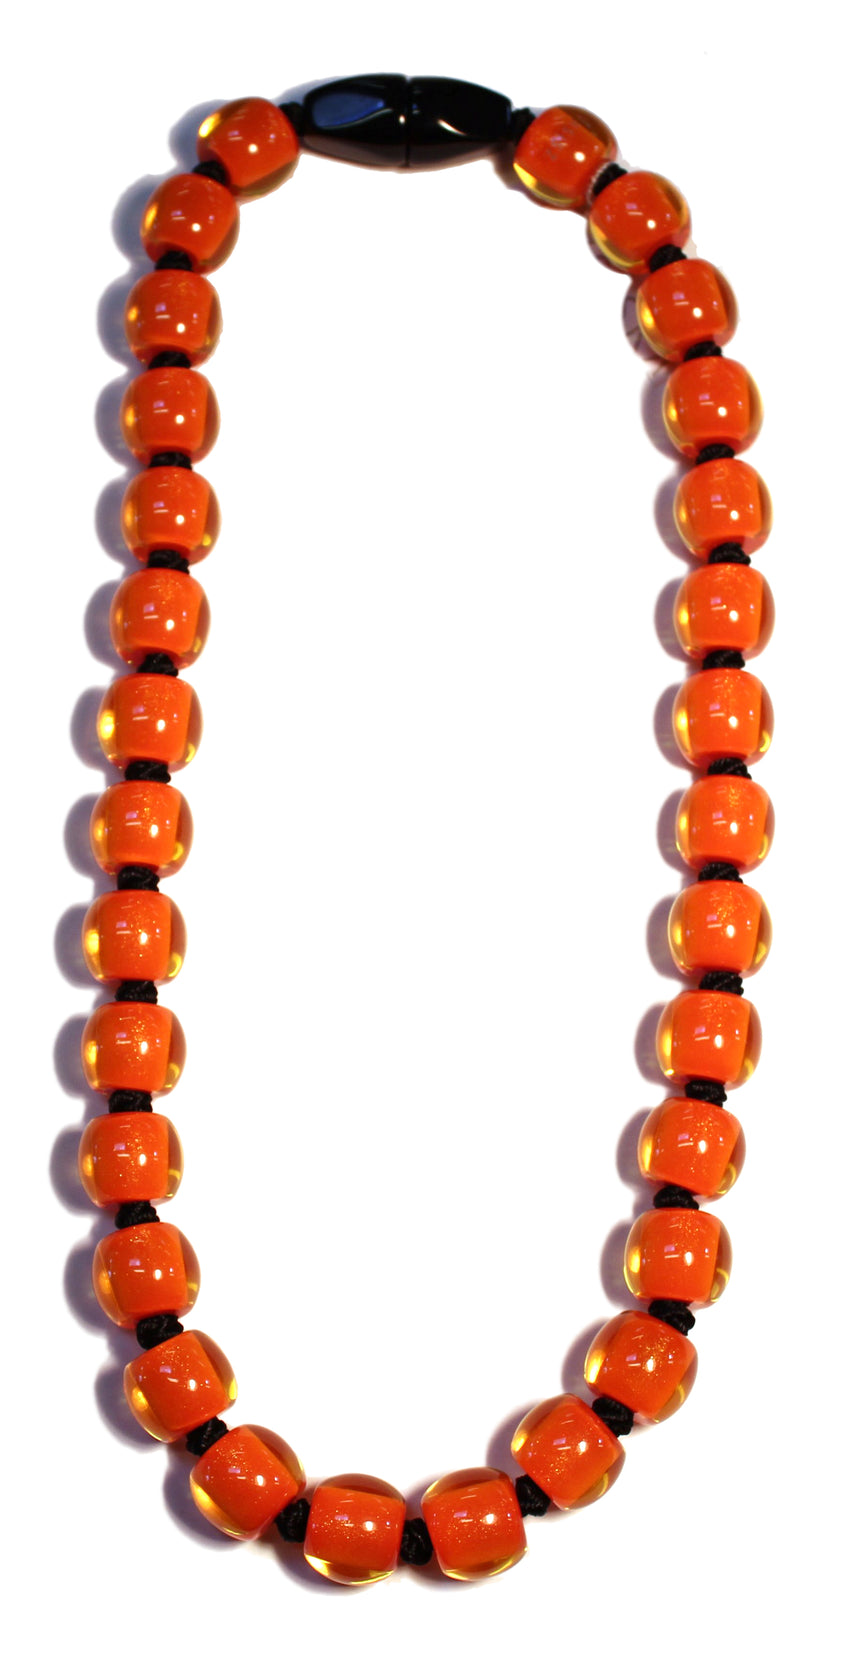 40101199016Q30 Colourful Beads Orange Bead Black 9016 Q30